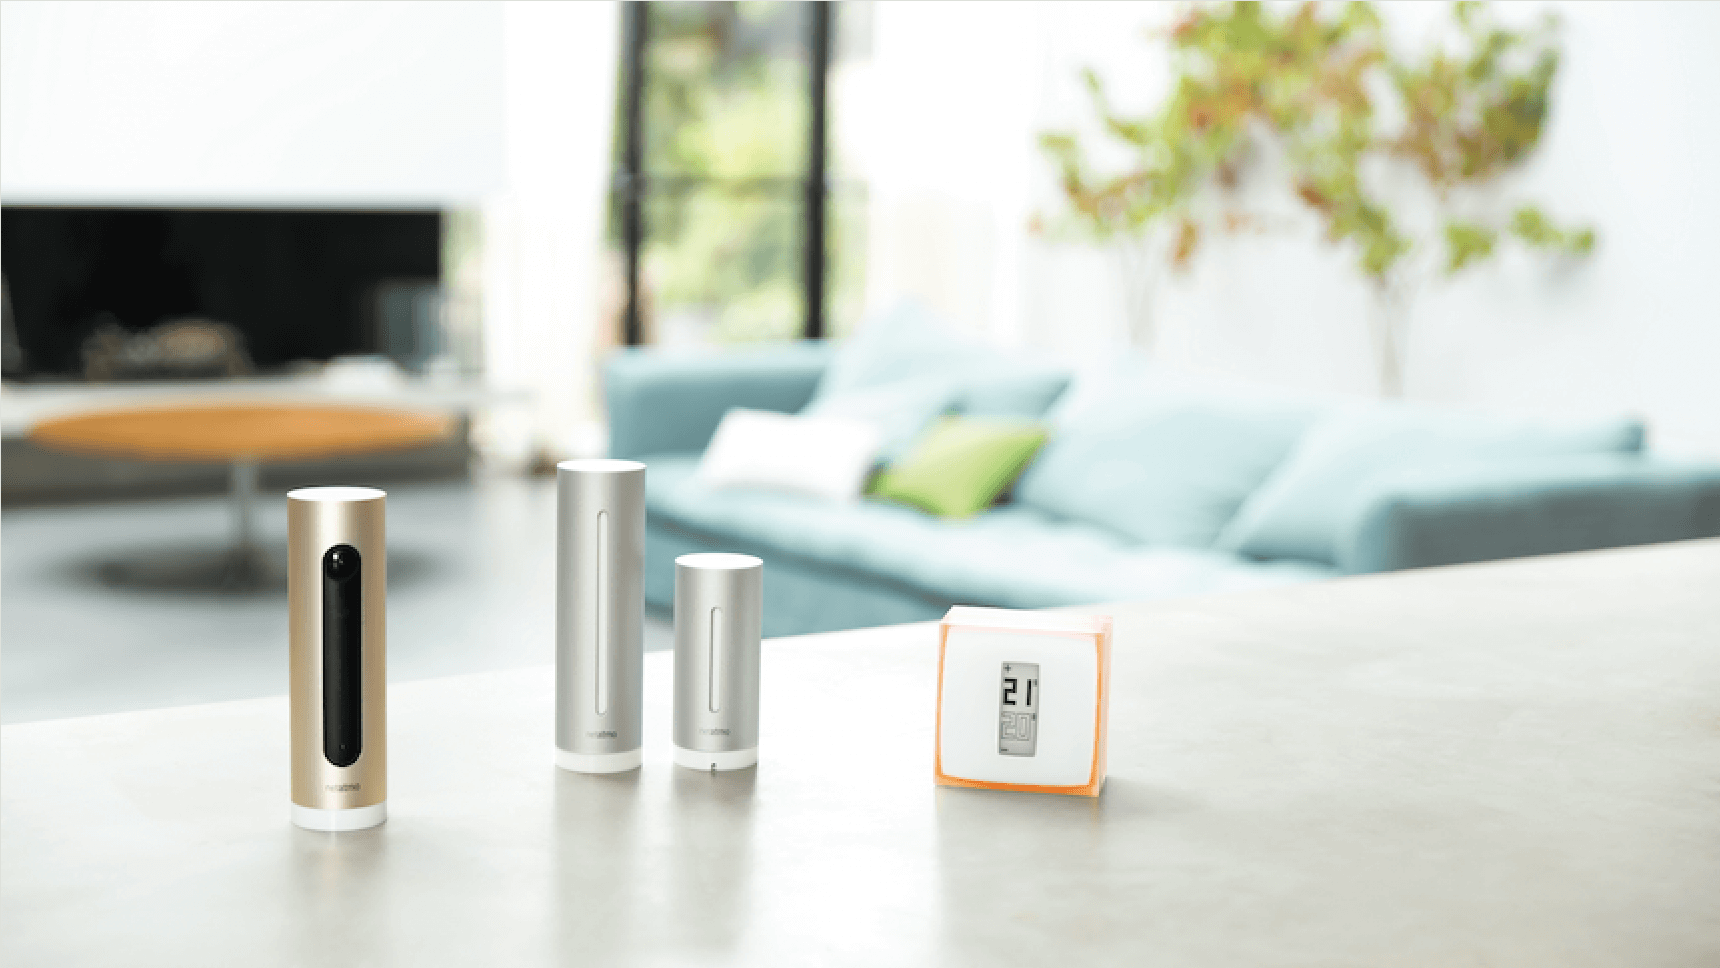 Netatmo products